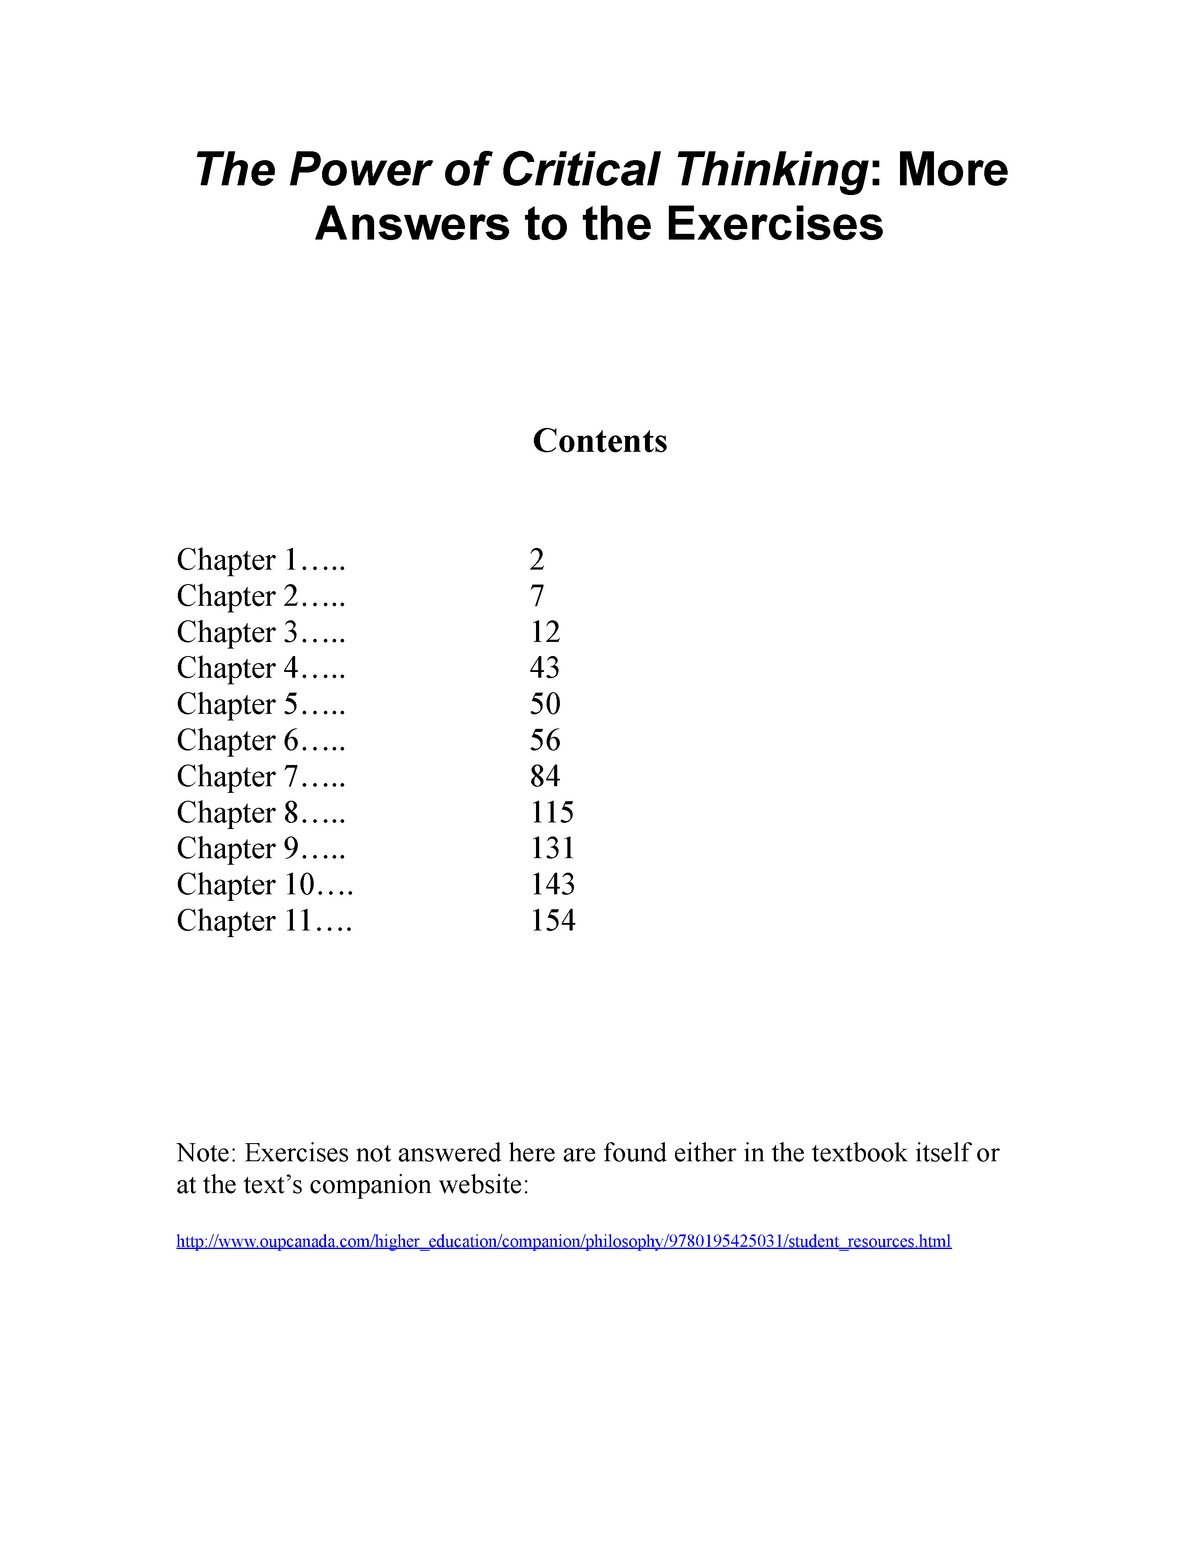 Vaughn Exercise Answers - PHIL105: Critical Thinking - StuDocu